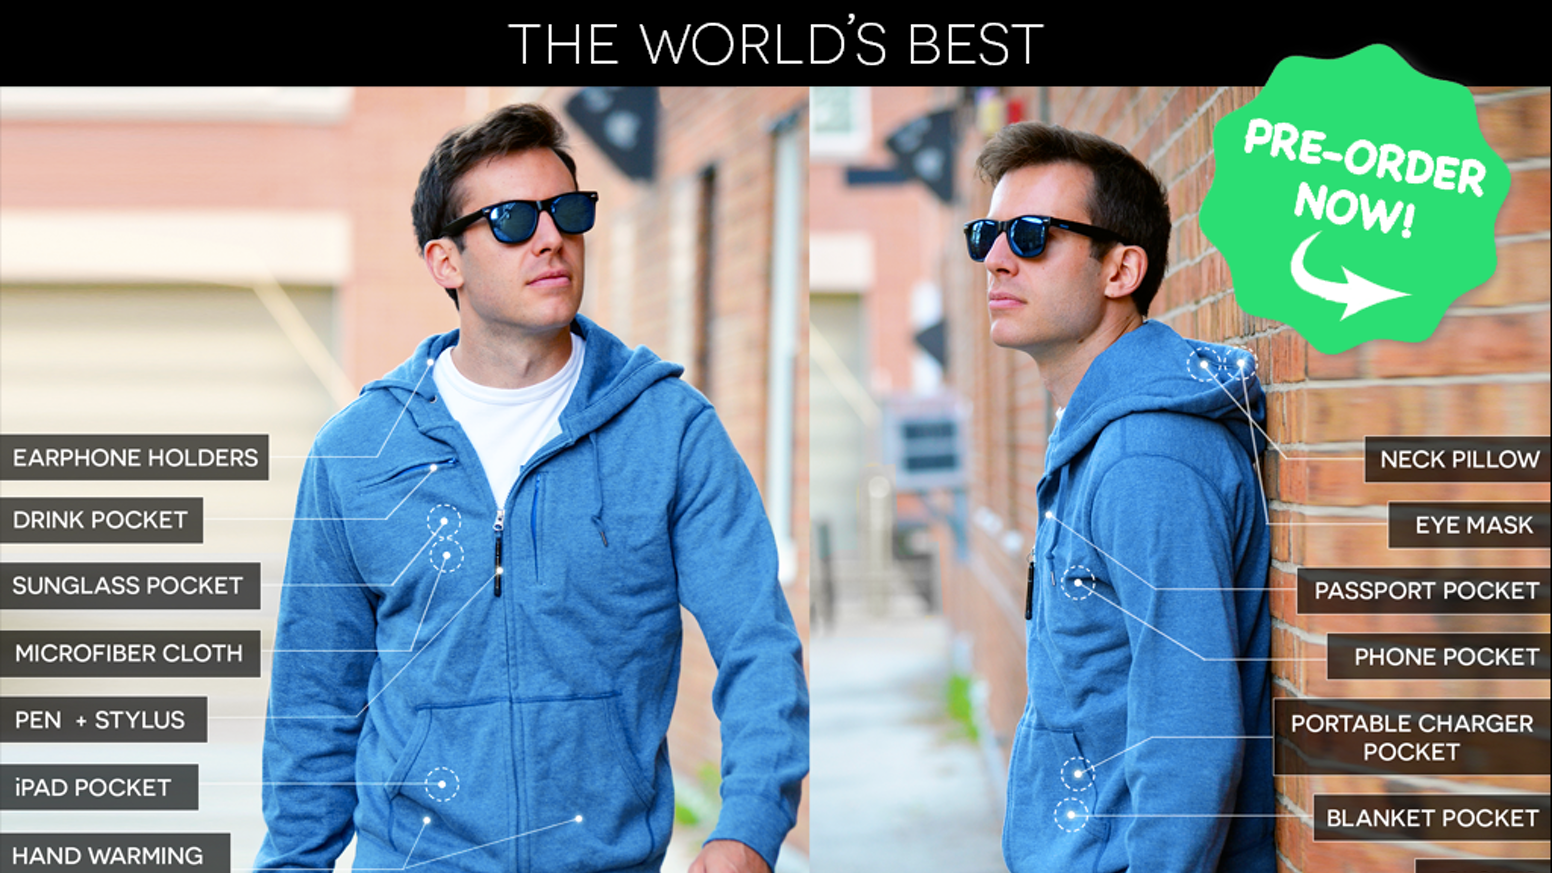 b0e1d480e1 The World s Best TRAVEL JACKET with 15 Features